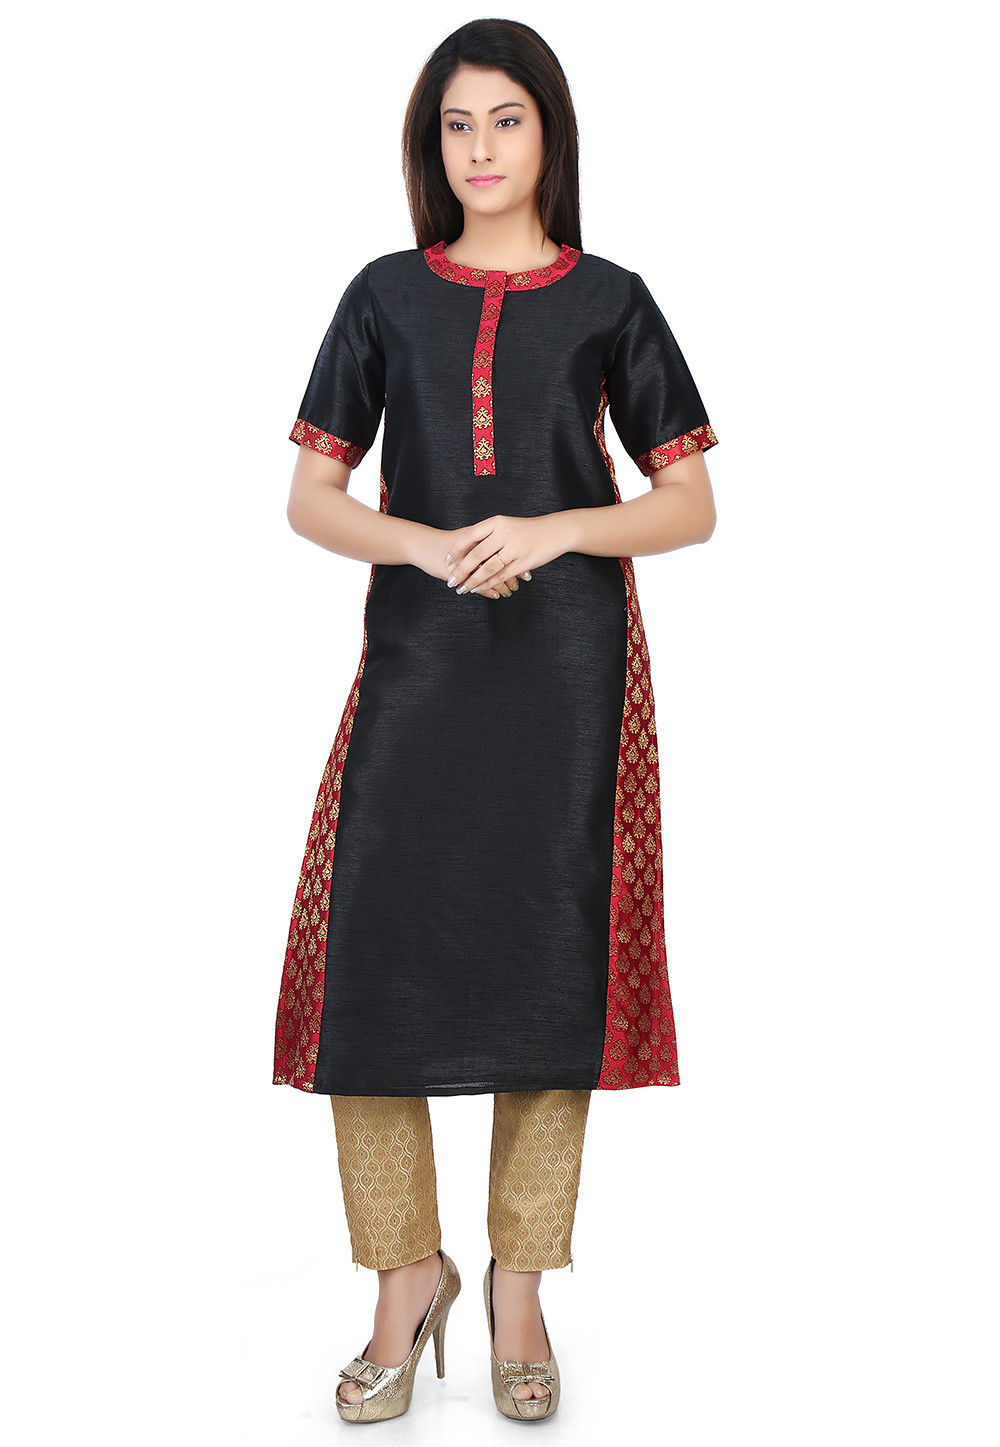 Woven Dupion and Brocade Long Kurta in Black and Red